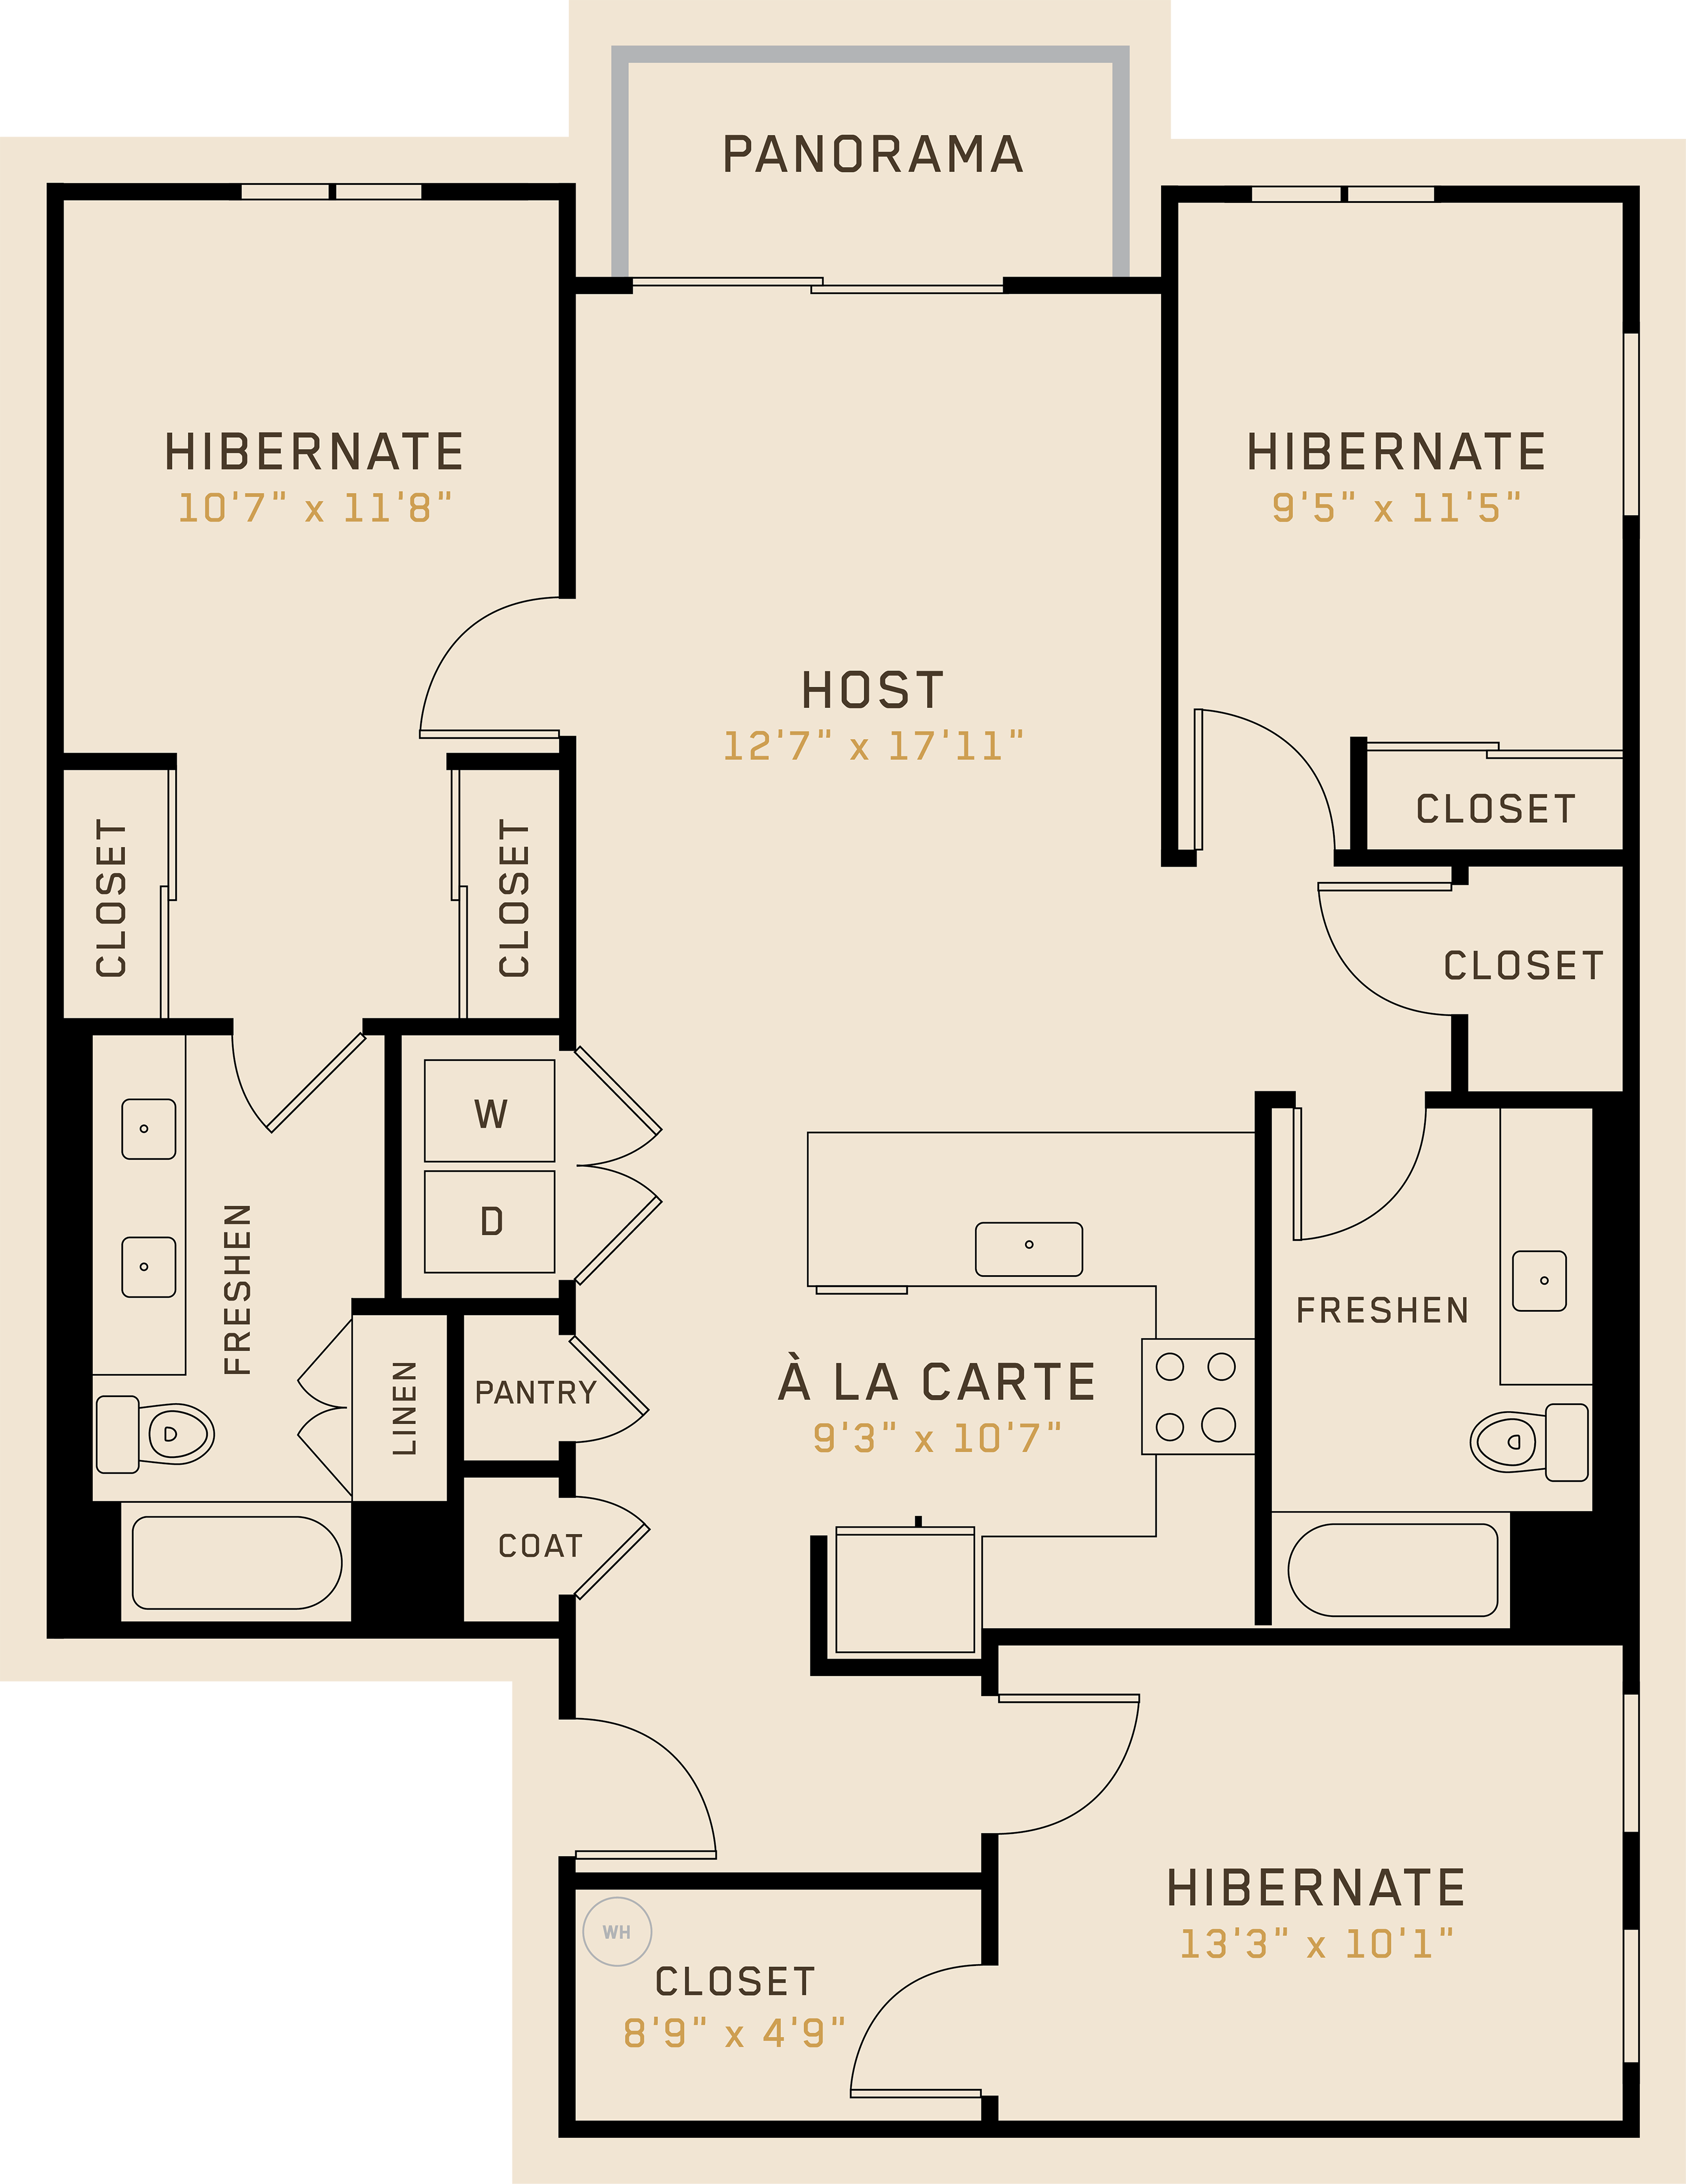 C2A floor plan featuring 3 bedrooms, 2 bathrooms, and is 1,299 square feet